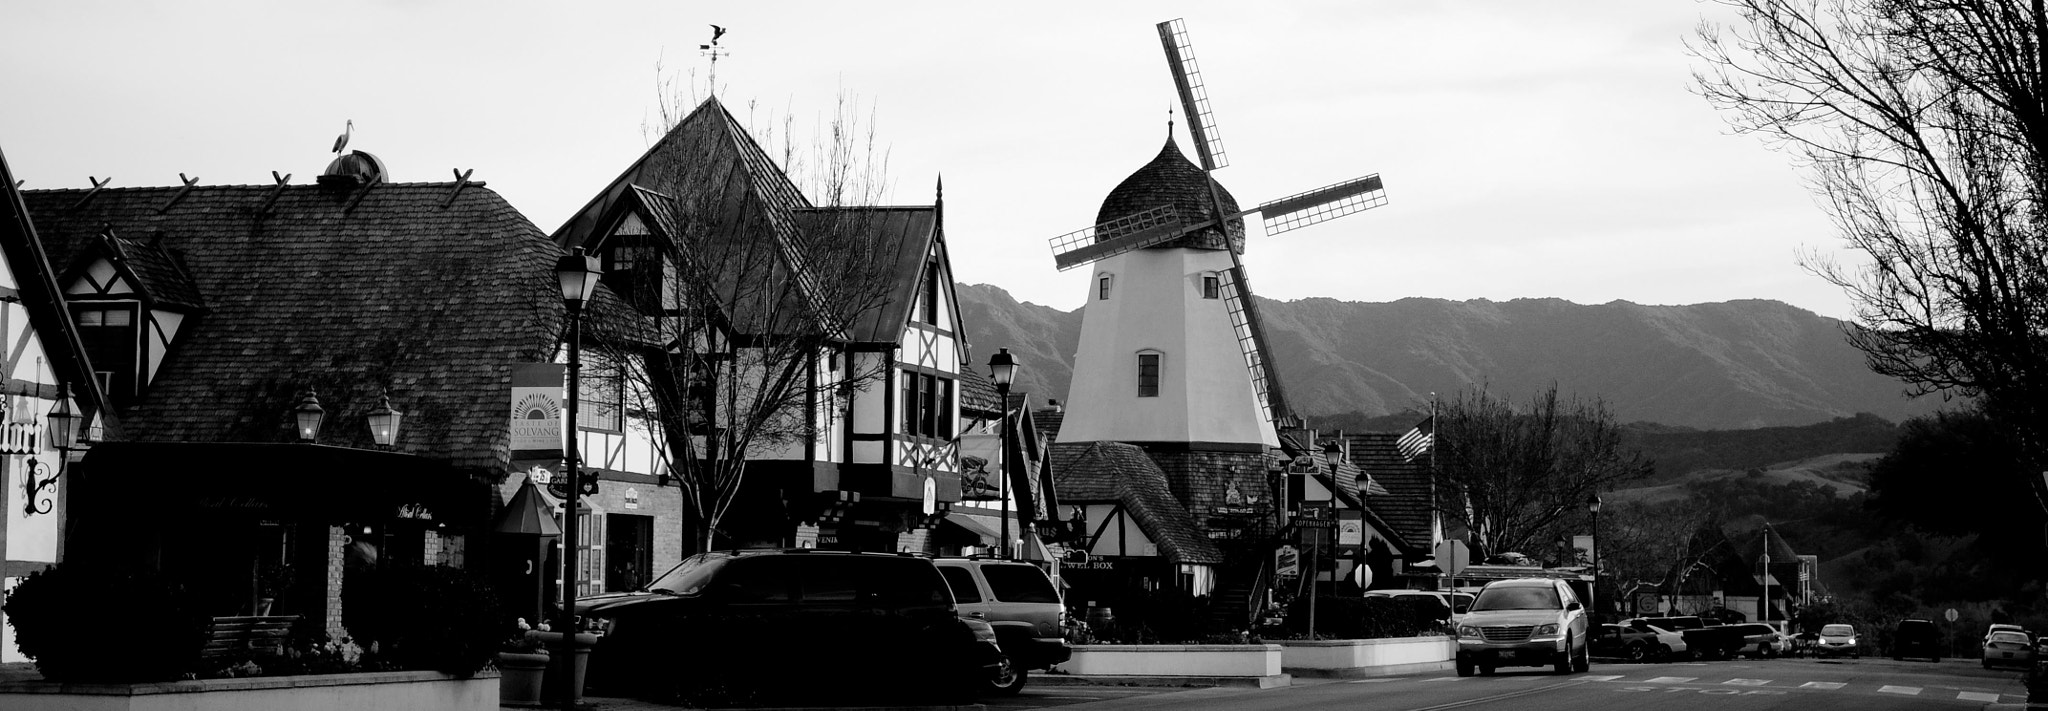 Photograph Solvang by N Simpson on 500px